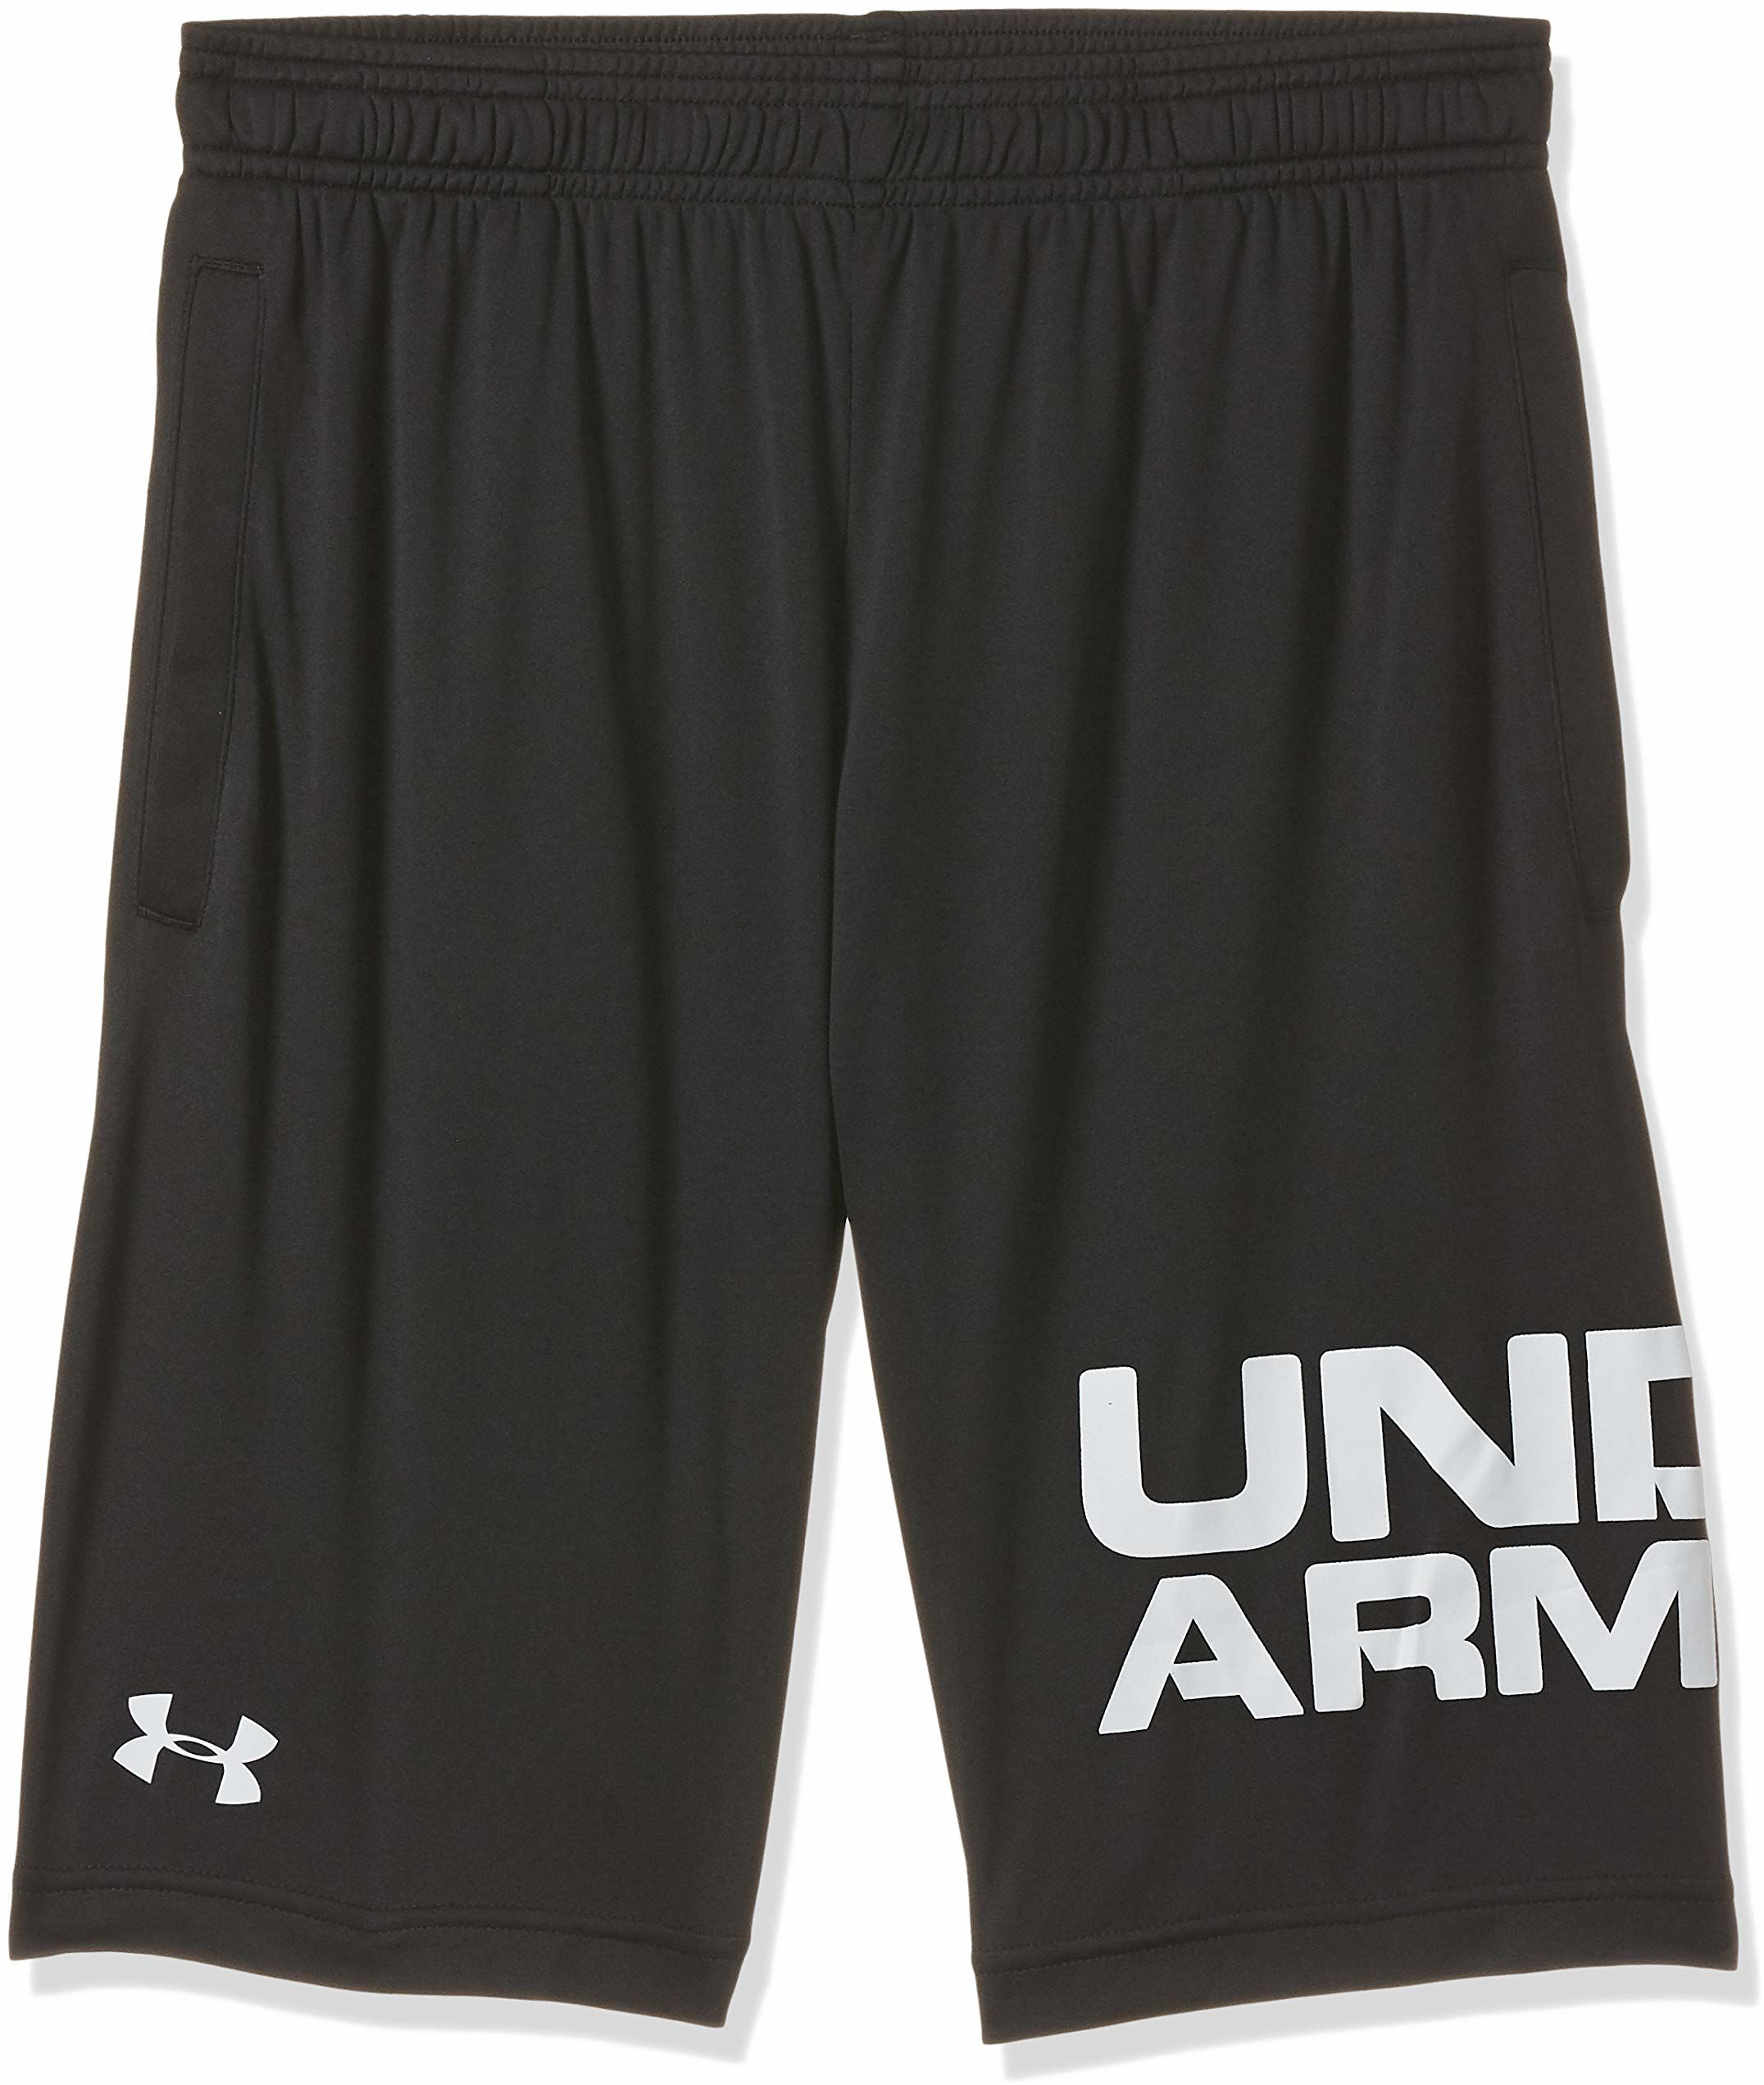 Under Armour Tech Słowo męskie szorty Black / / White (001) L